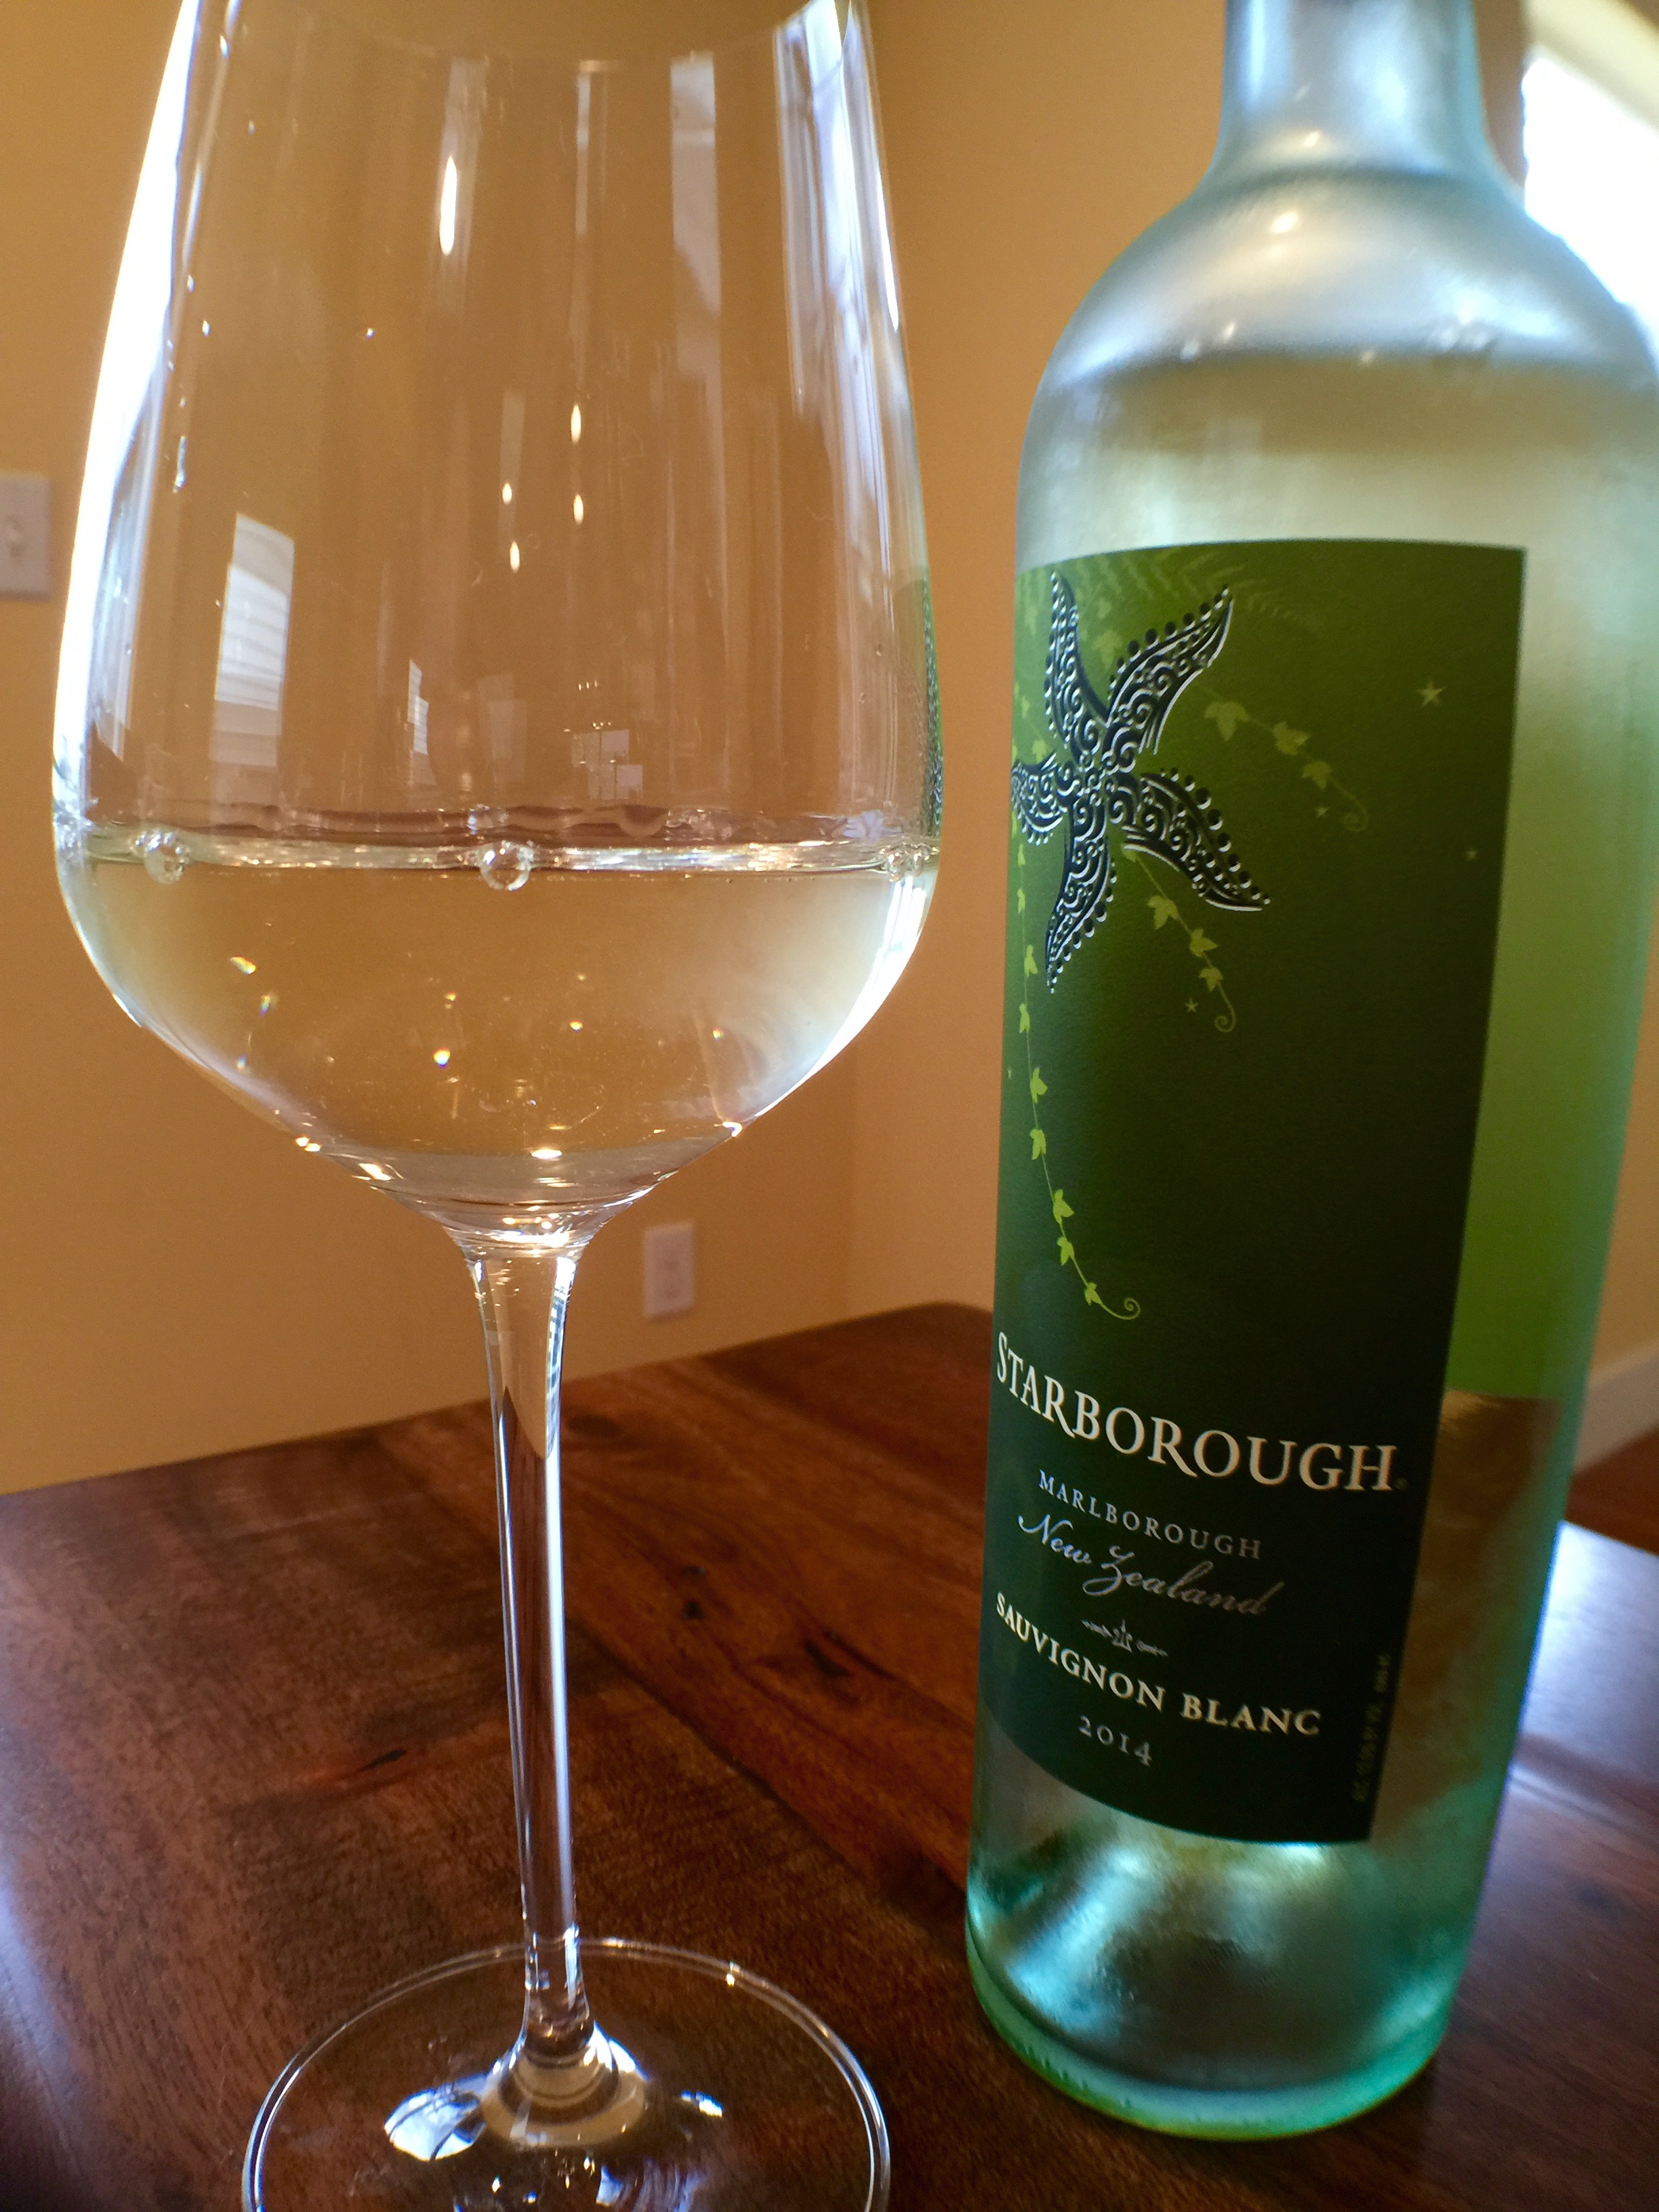 2014 Starborough Sauvignon Blanc